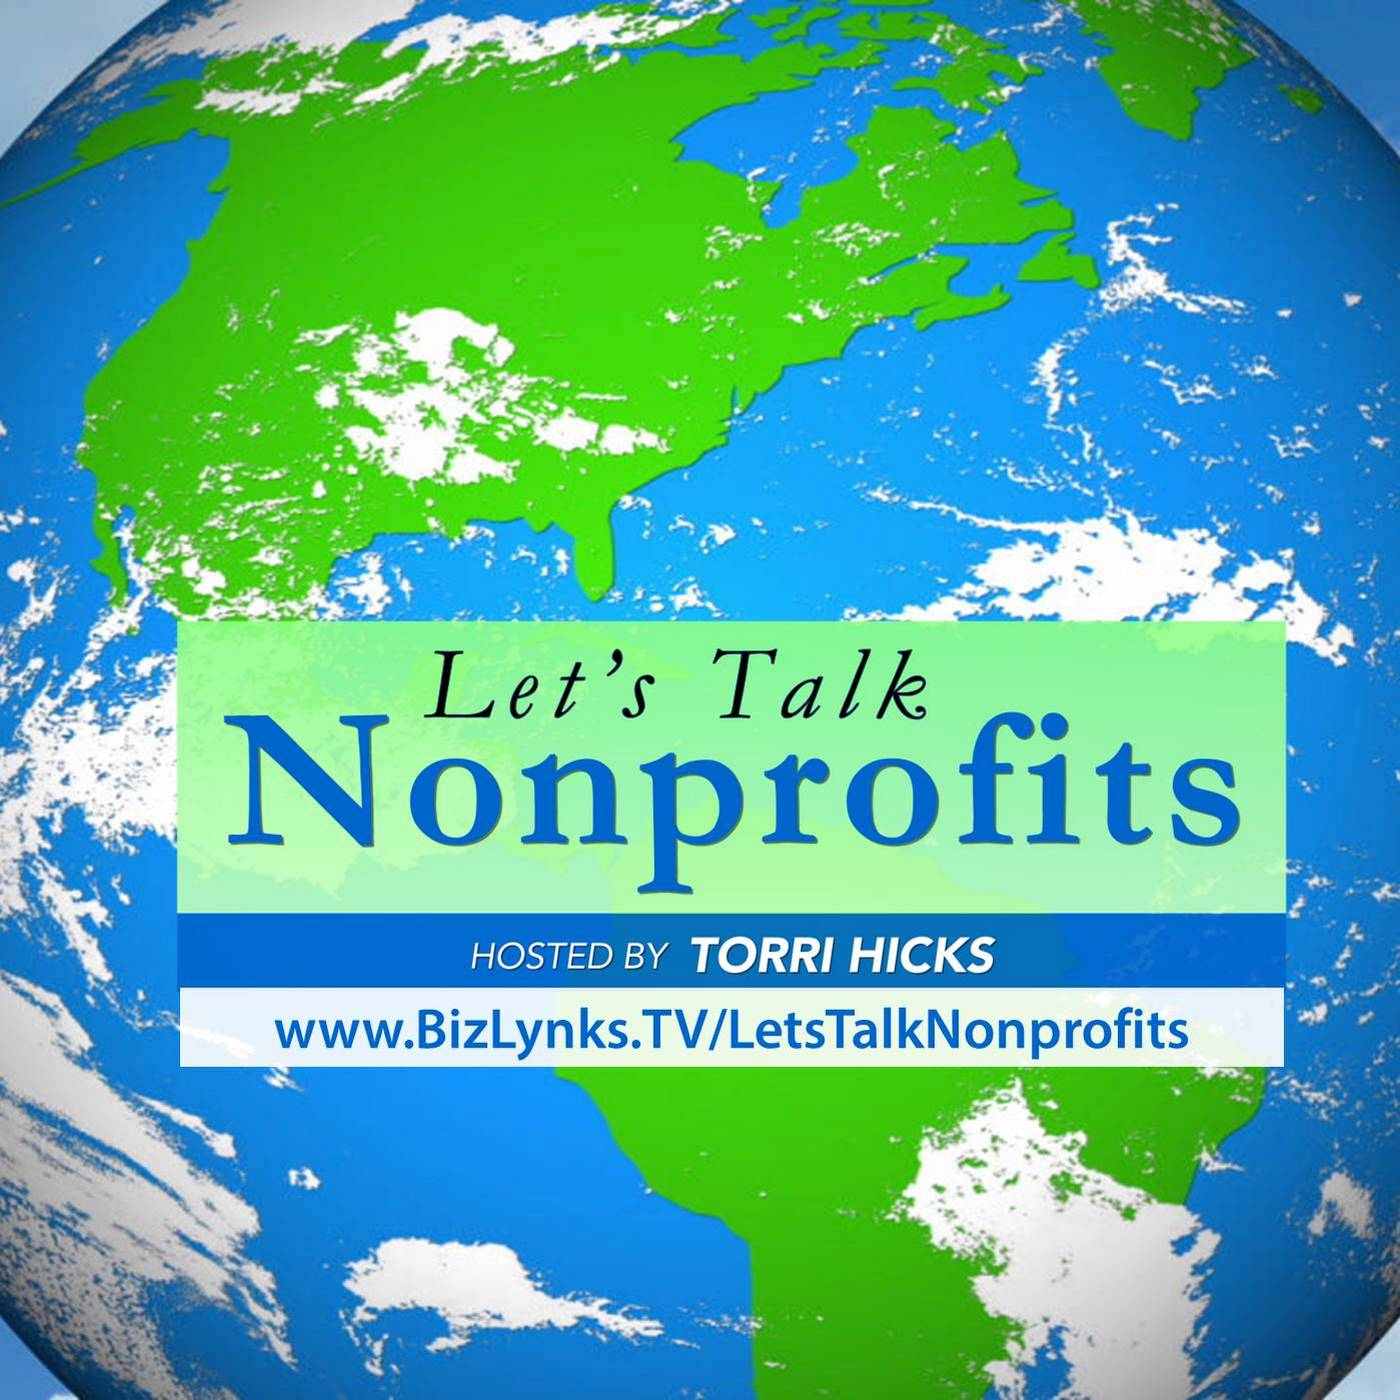 Let's Talk Nonprofits | BizLynks TV Network